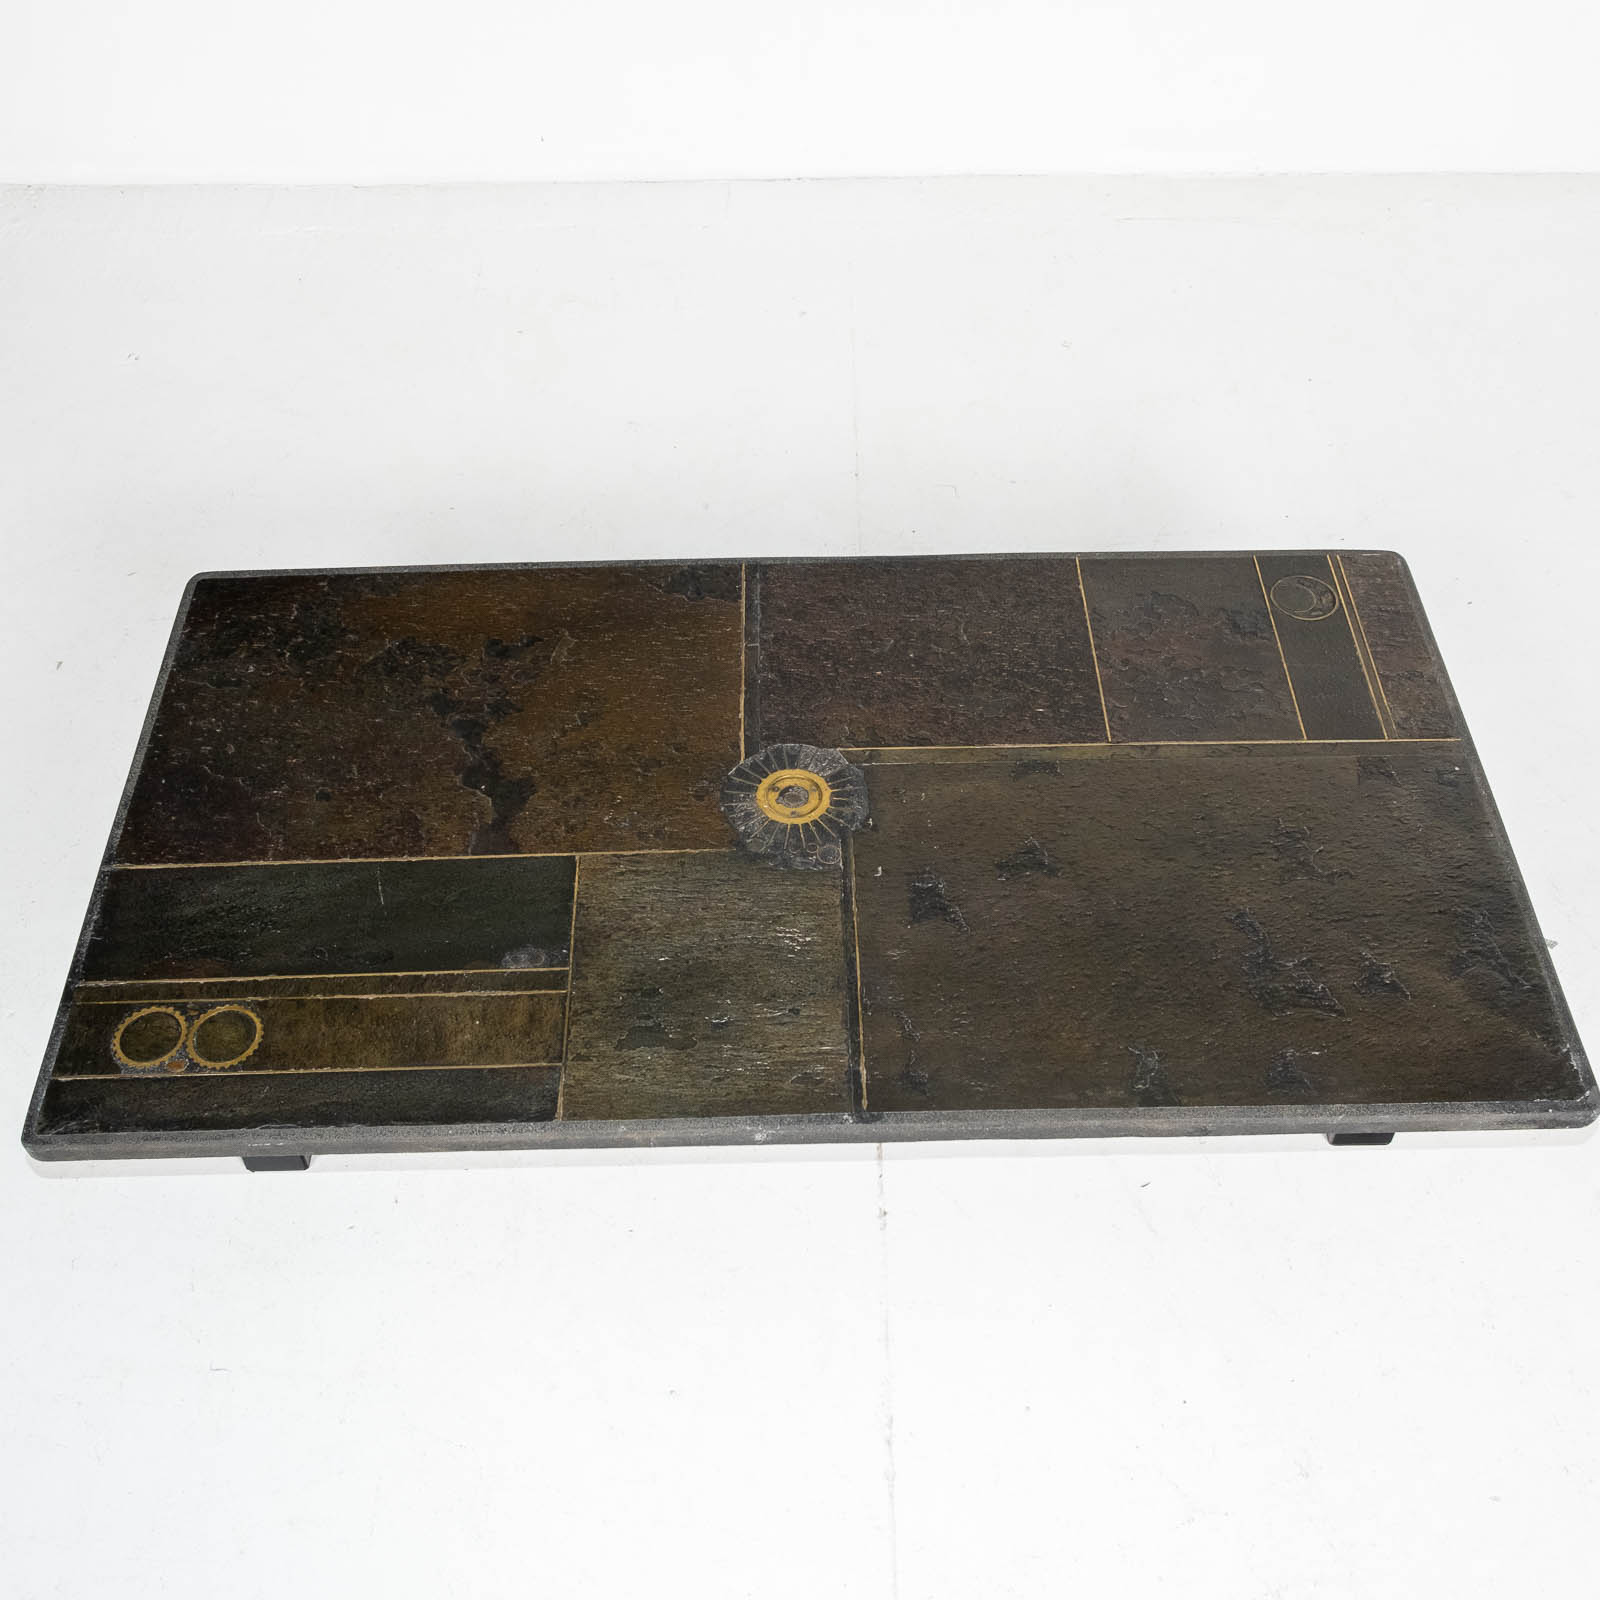 Rectangular Coffee Table By Paul Kingma In Stone, Slate And Brass, 1970s, The Netherlands 00006